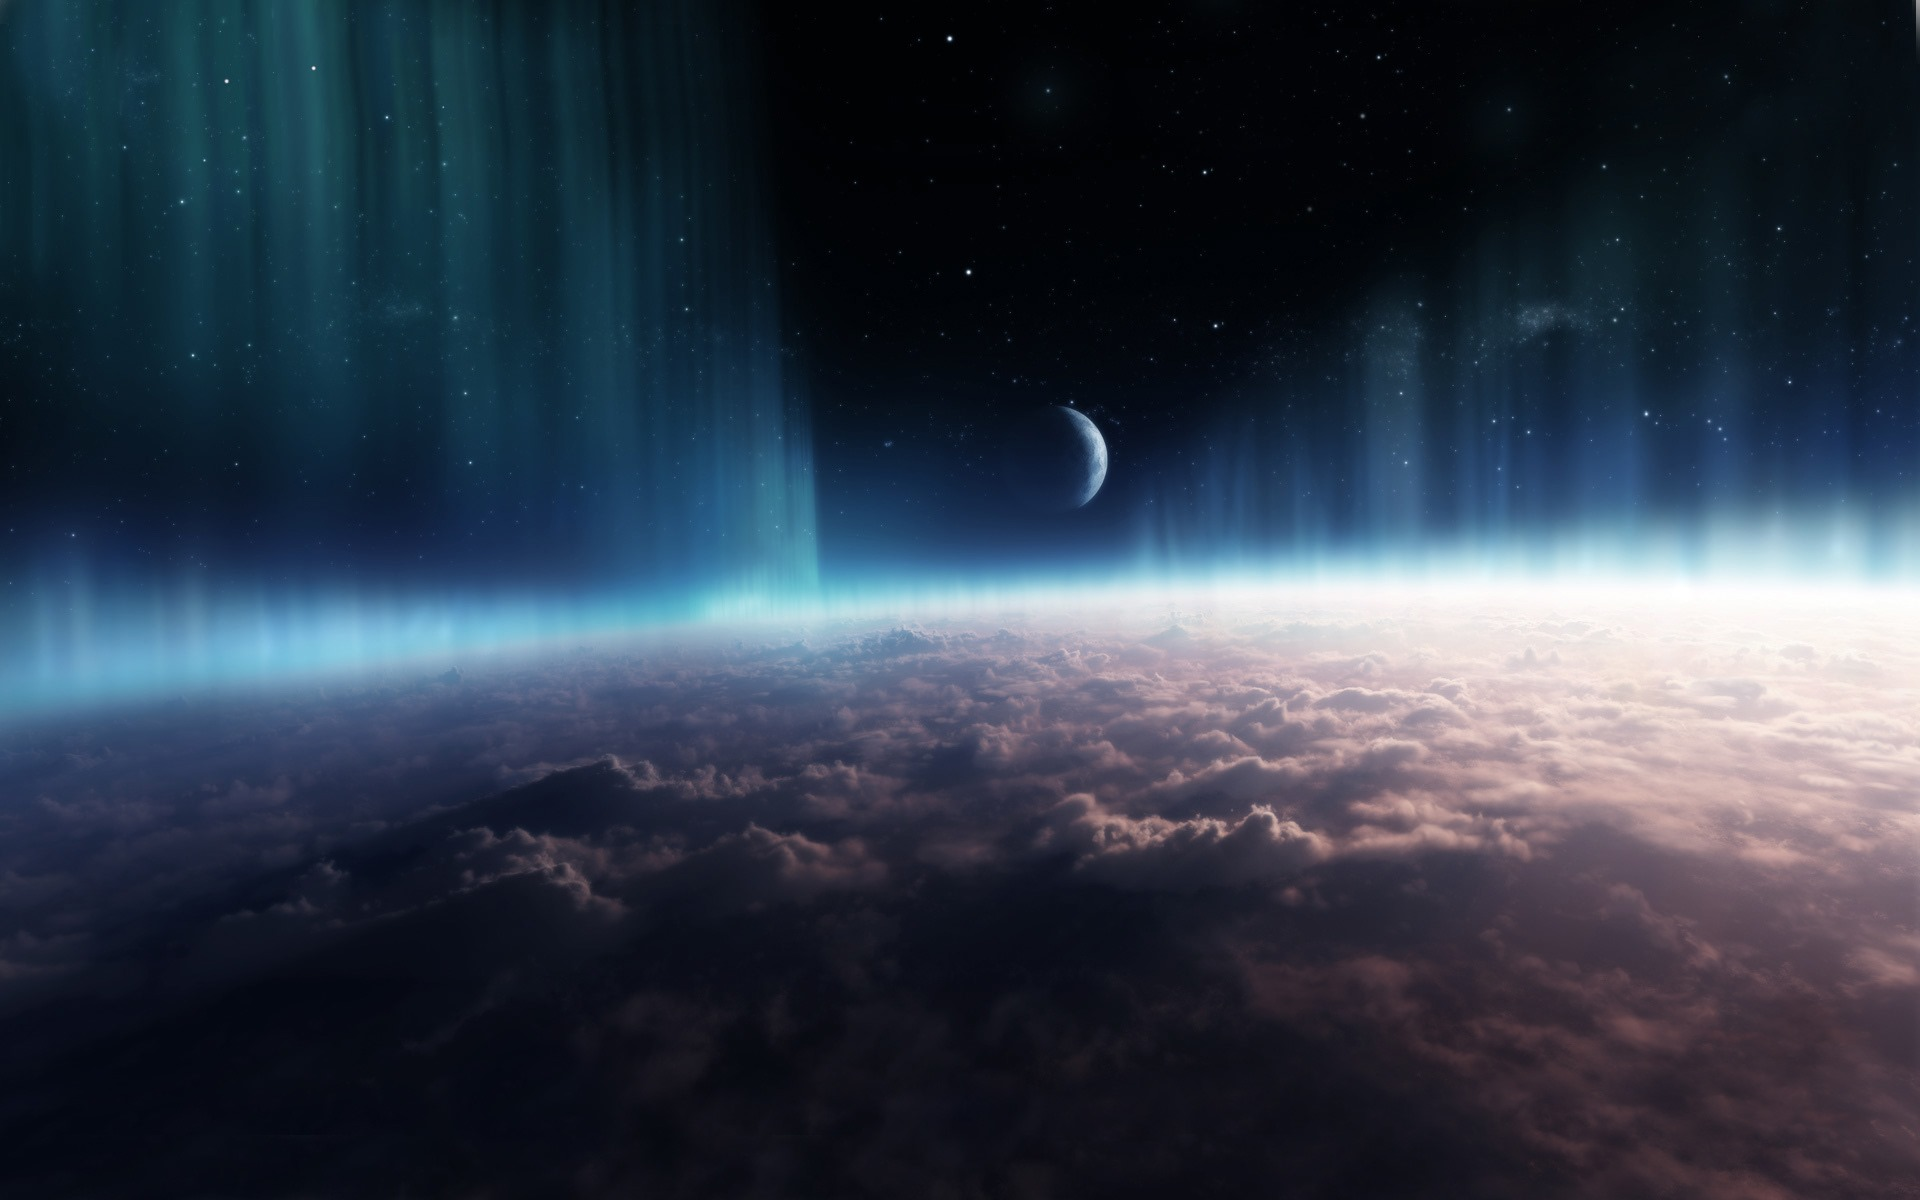 space hd 1920x1200 - photo #1